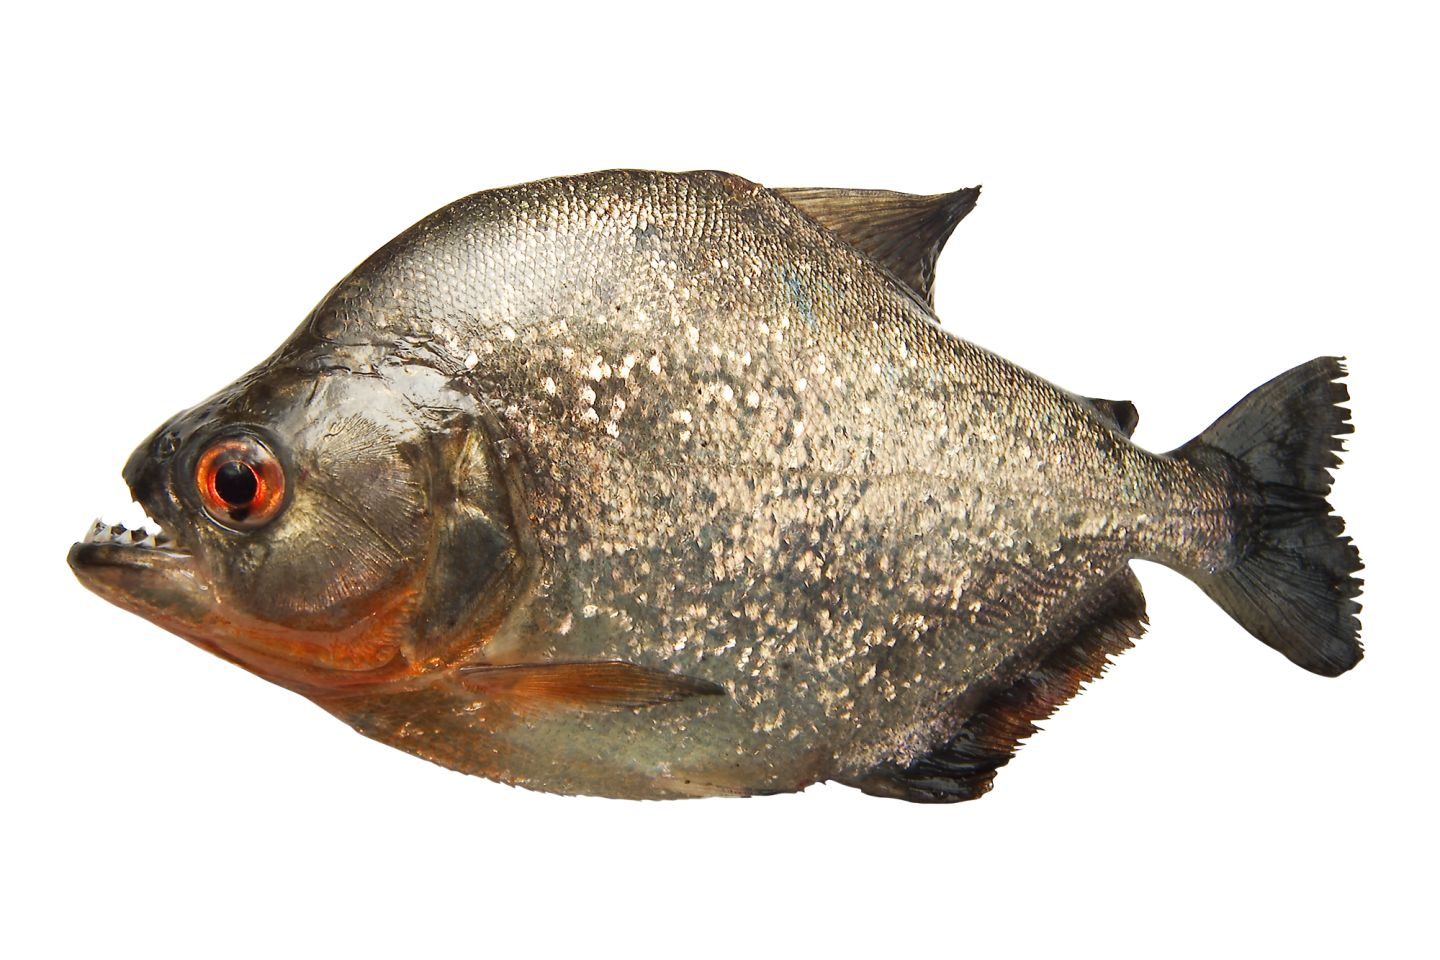 Piranha Facts Where Do Piranhas Live DK Find Out